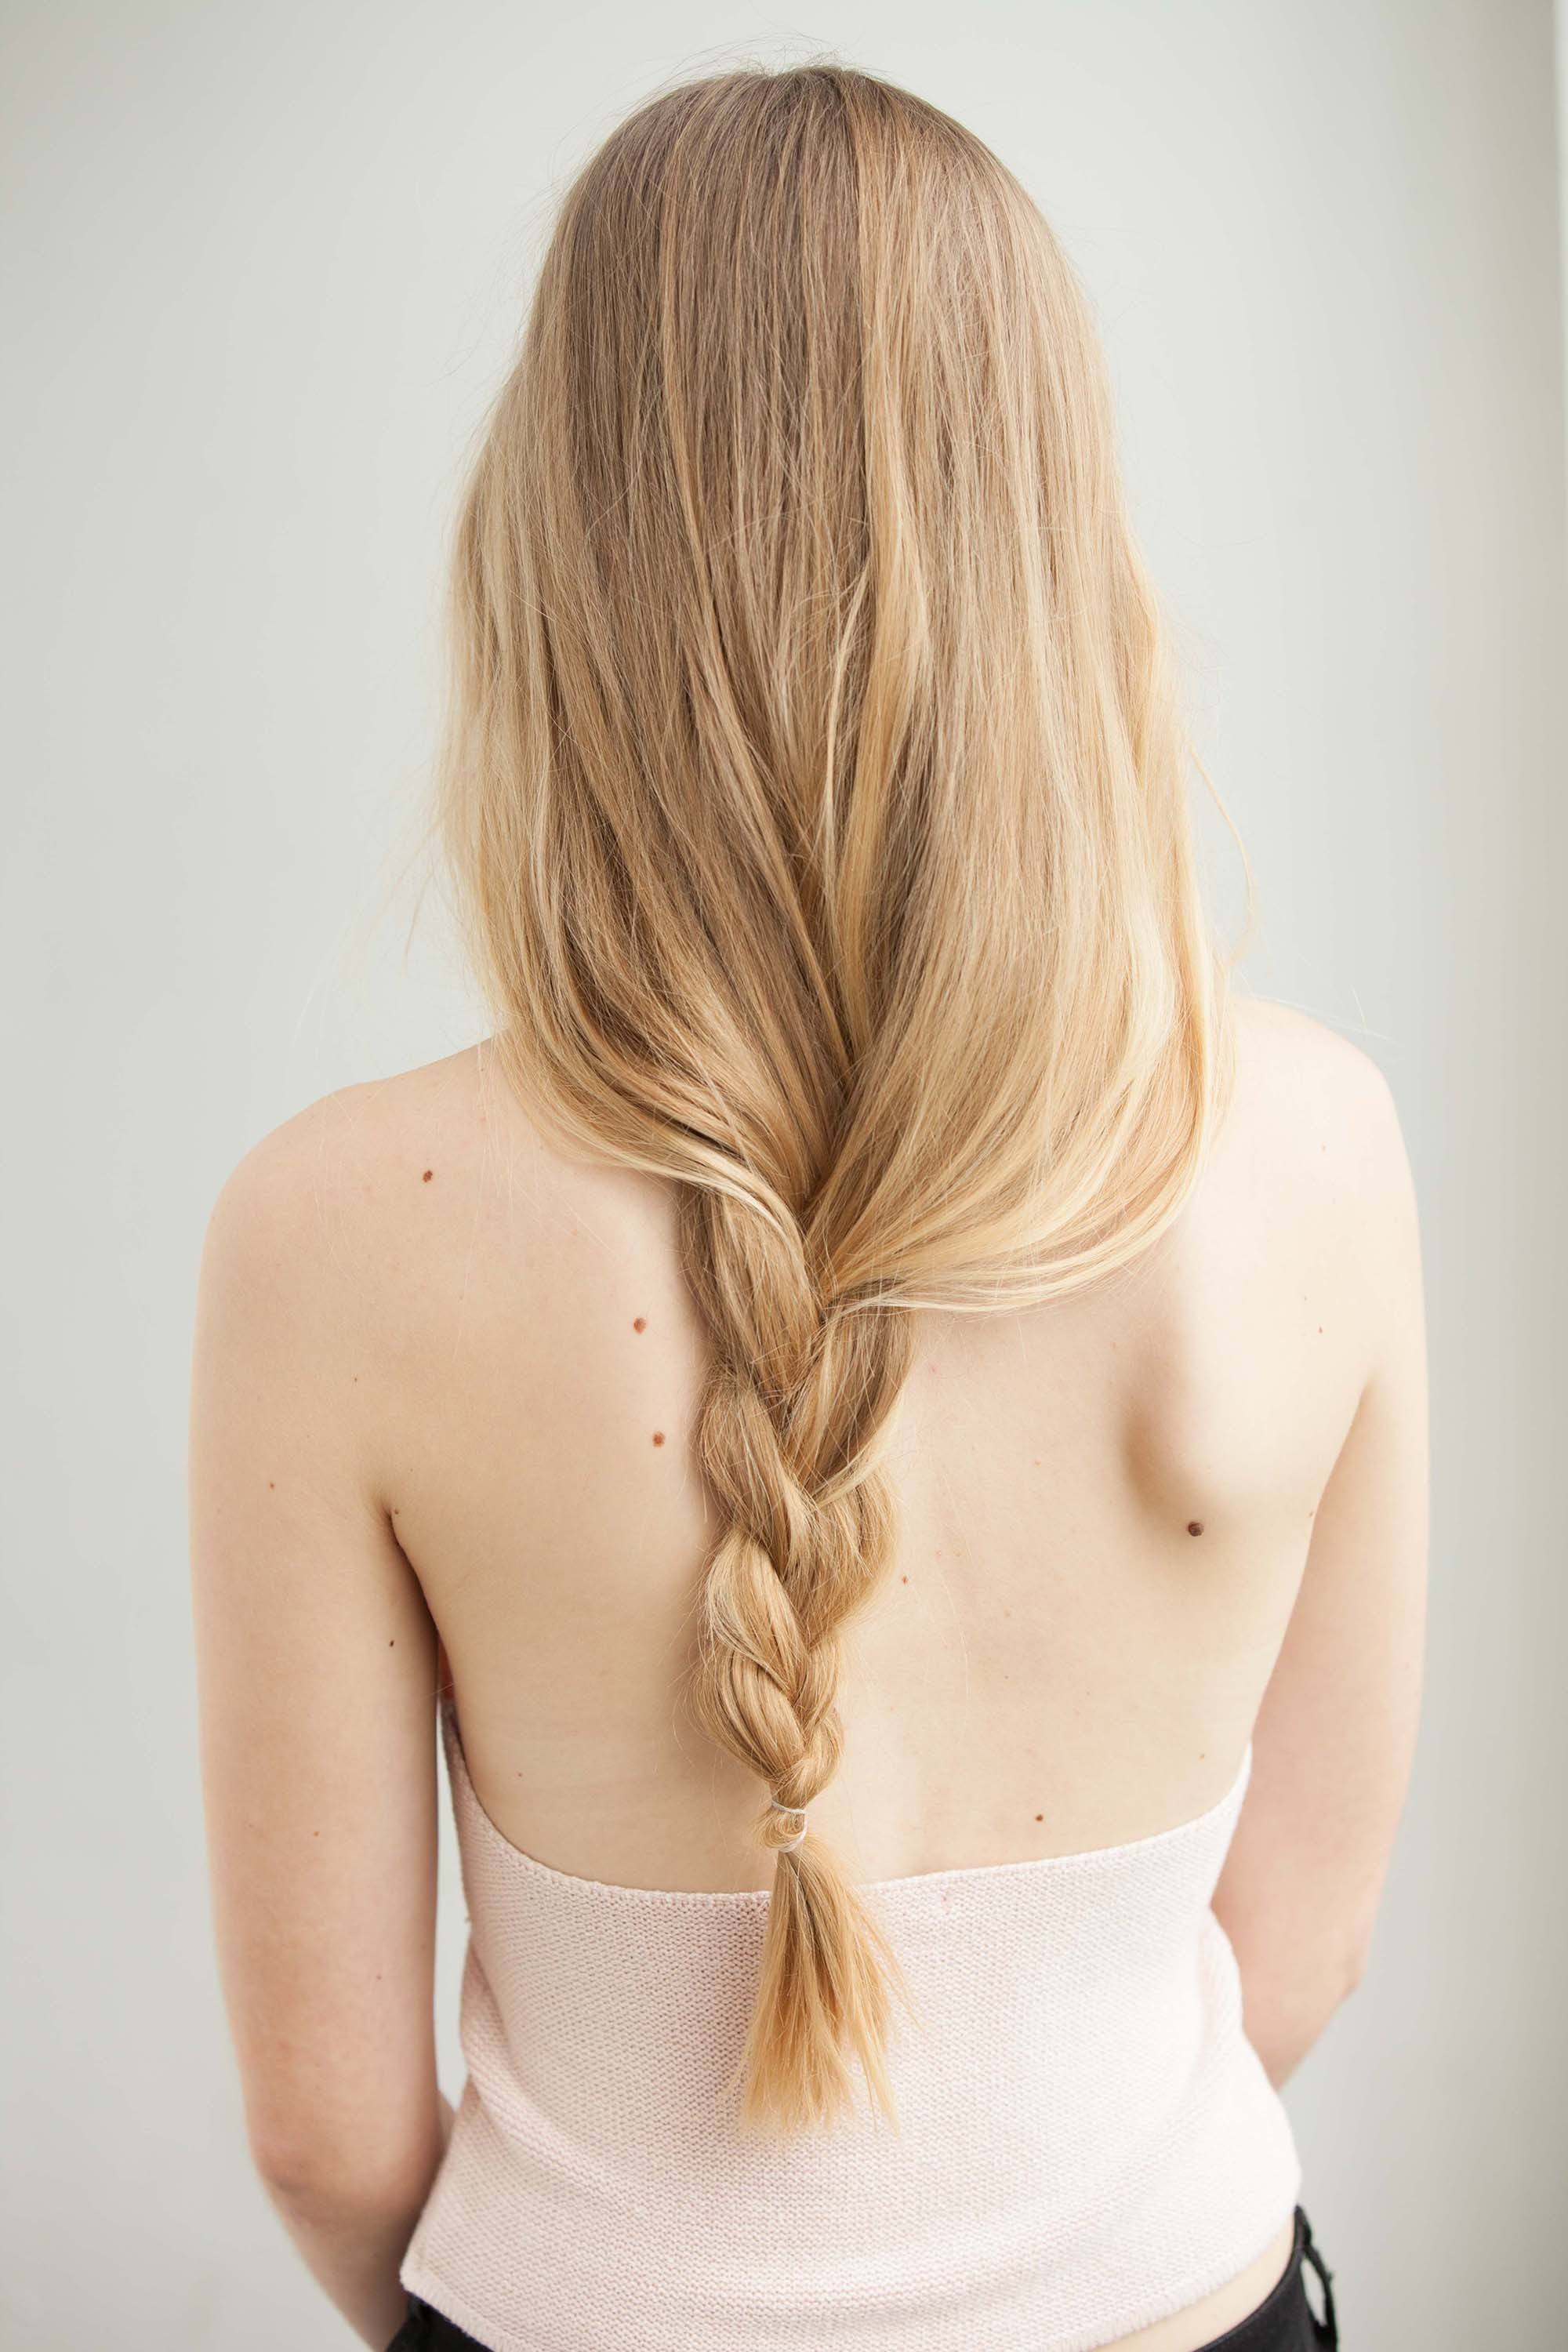 6 Reasons Why Loose Plaits Should Be On Your Radar With Inspo